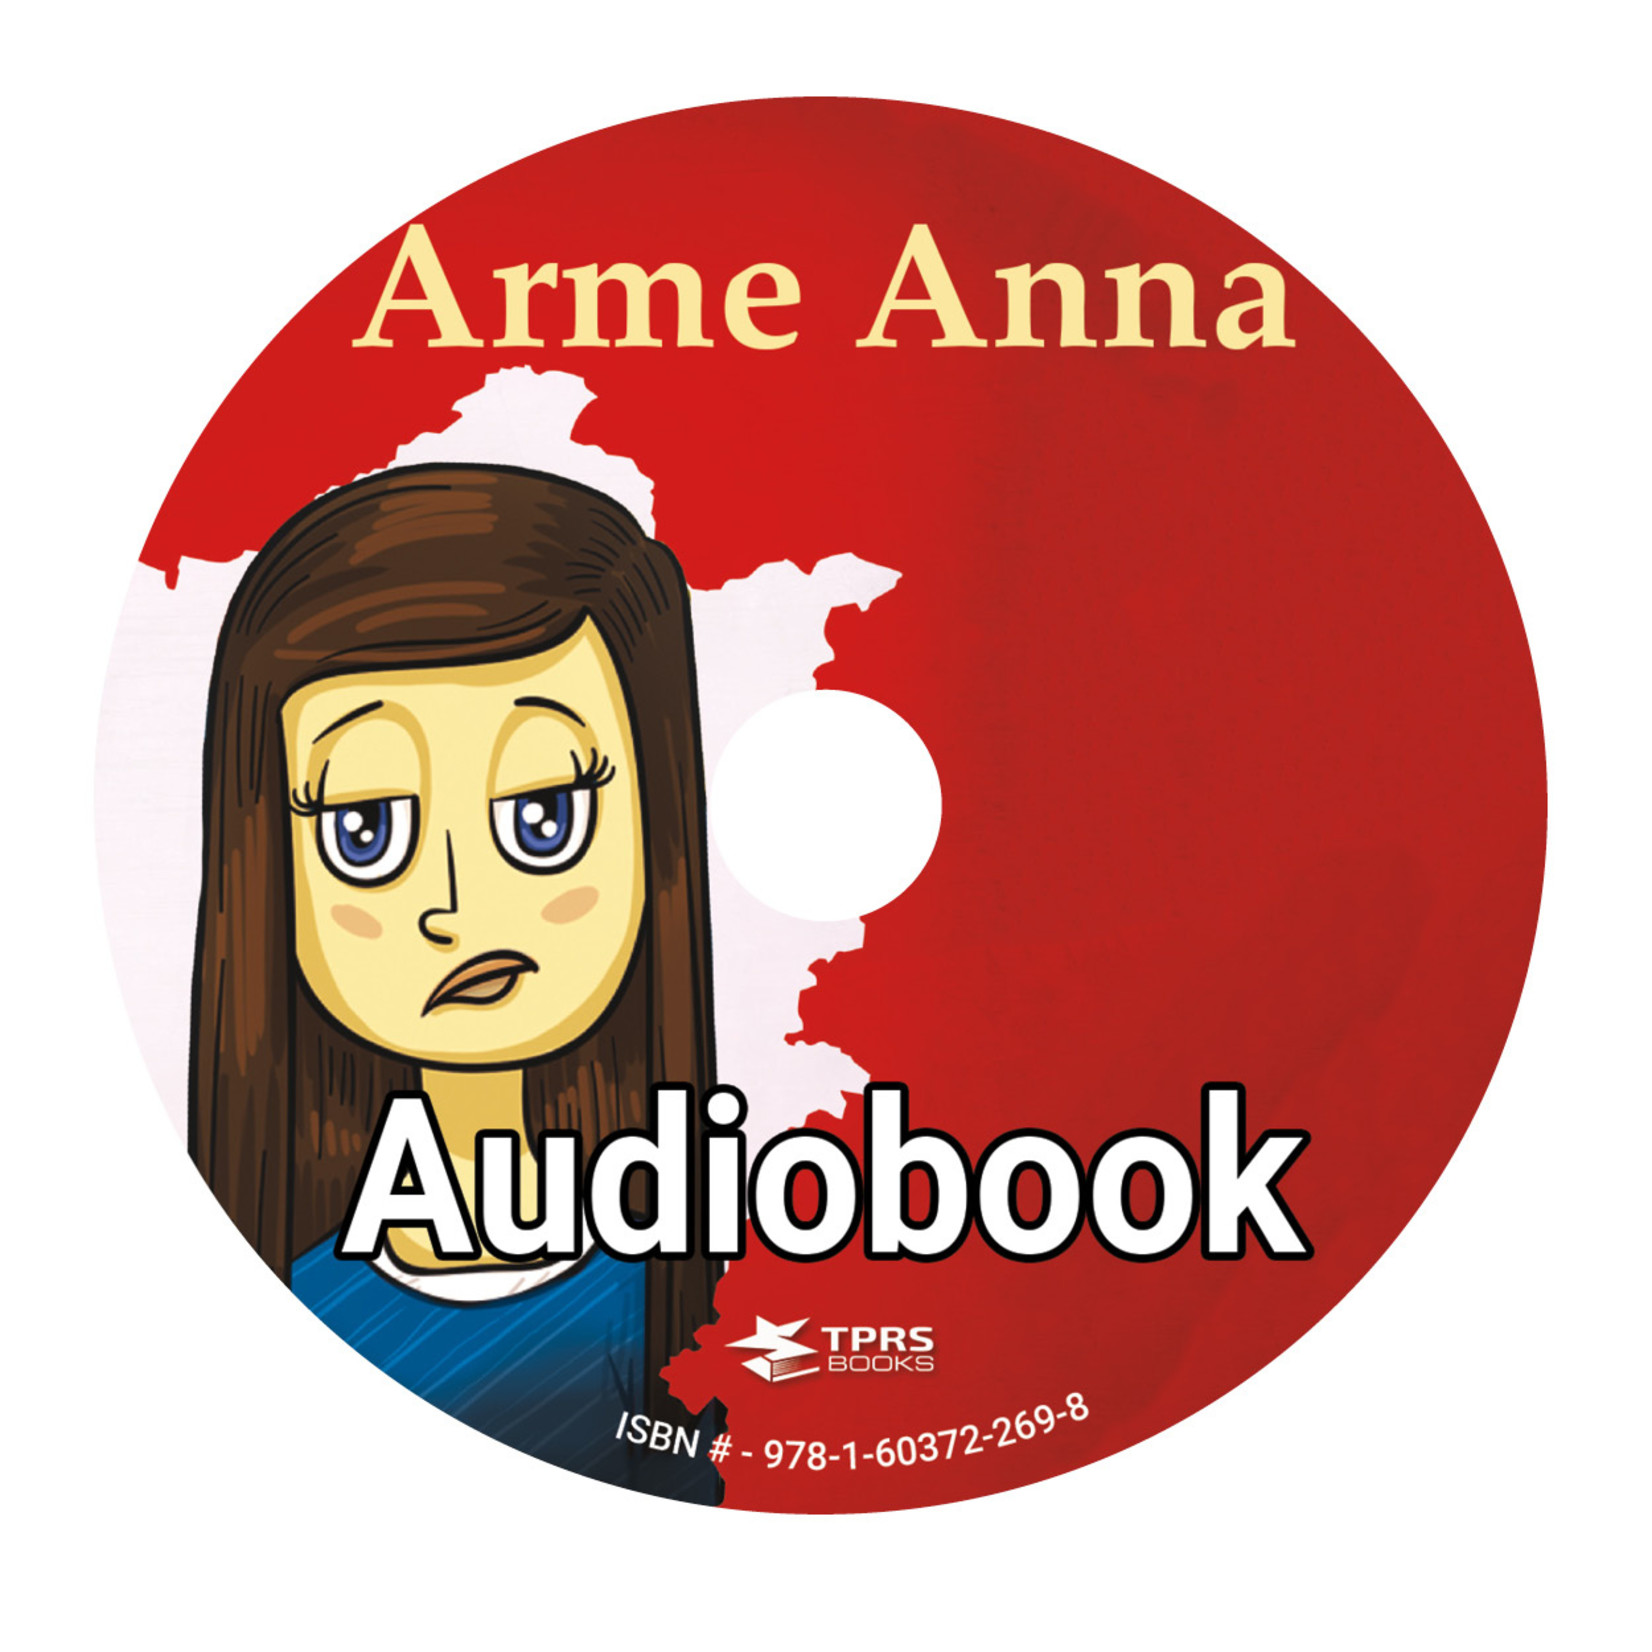 TPRS Books Arme Anna - Audiobook